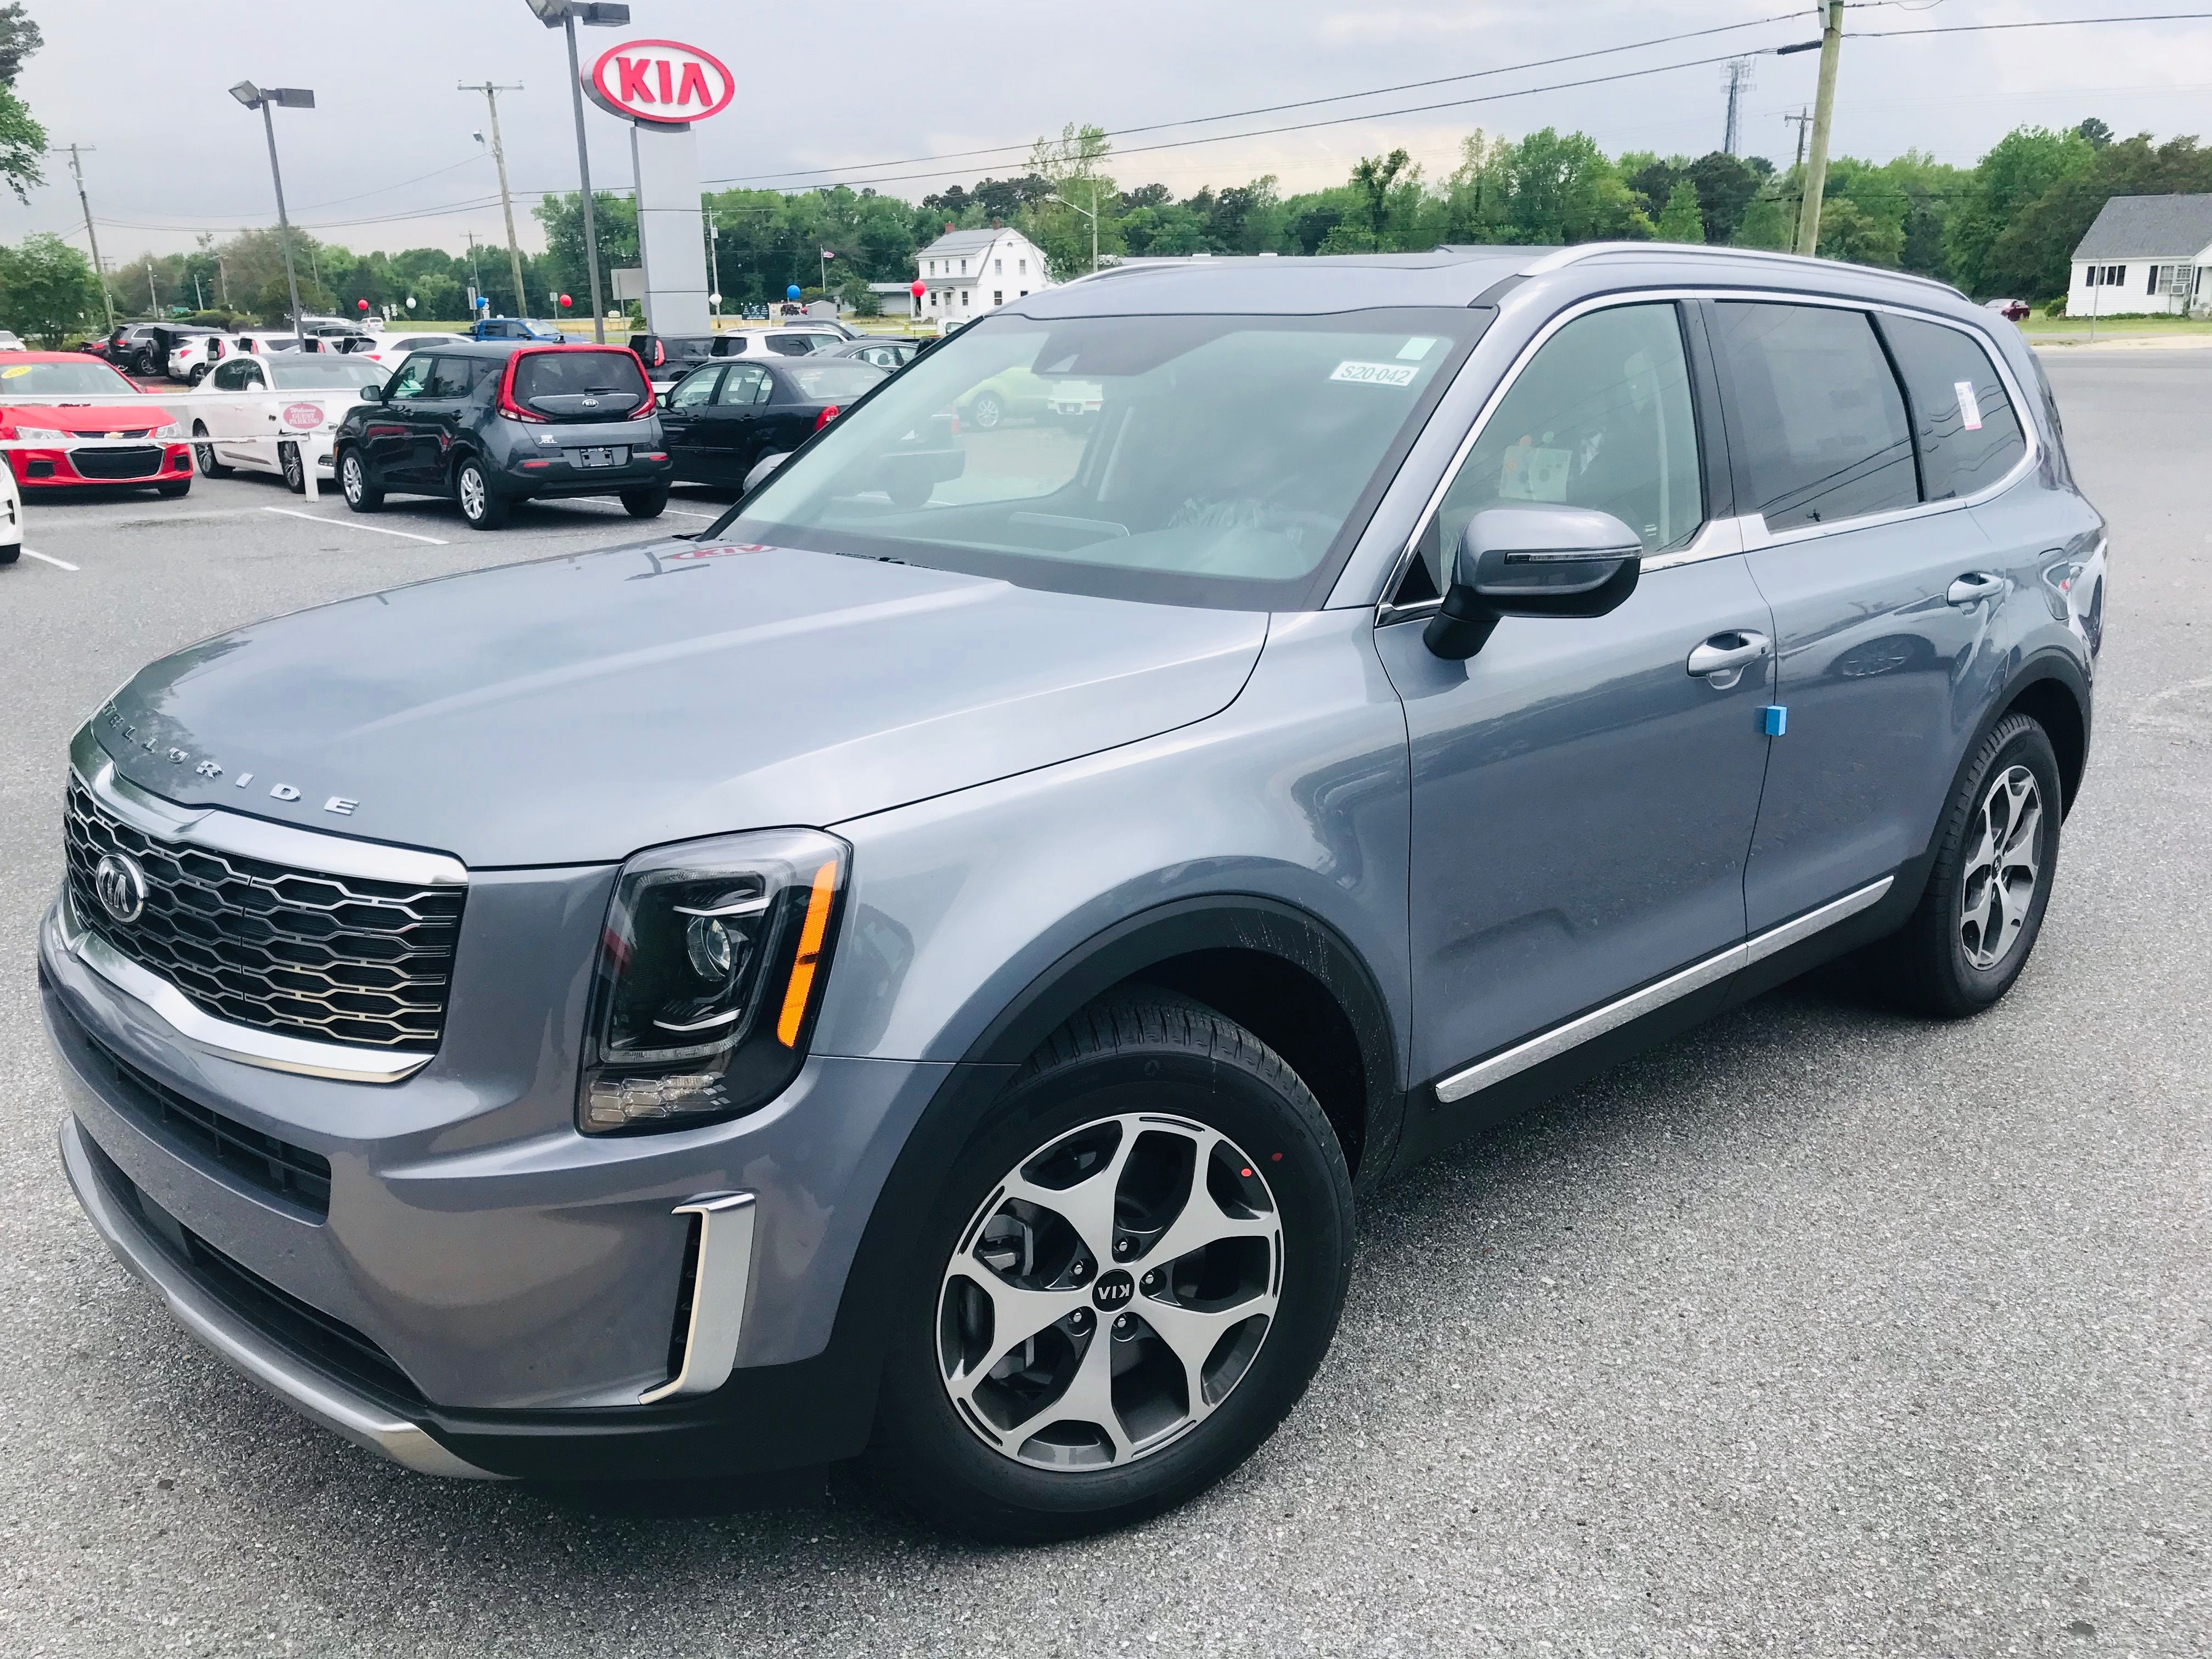 Fresh off the boat this 2020 kia telluride just arrived